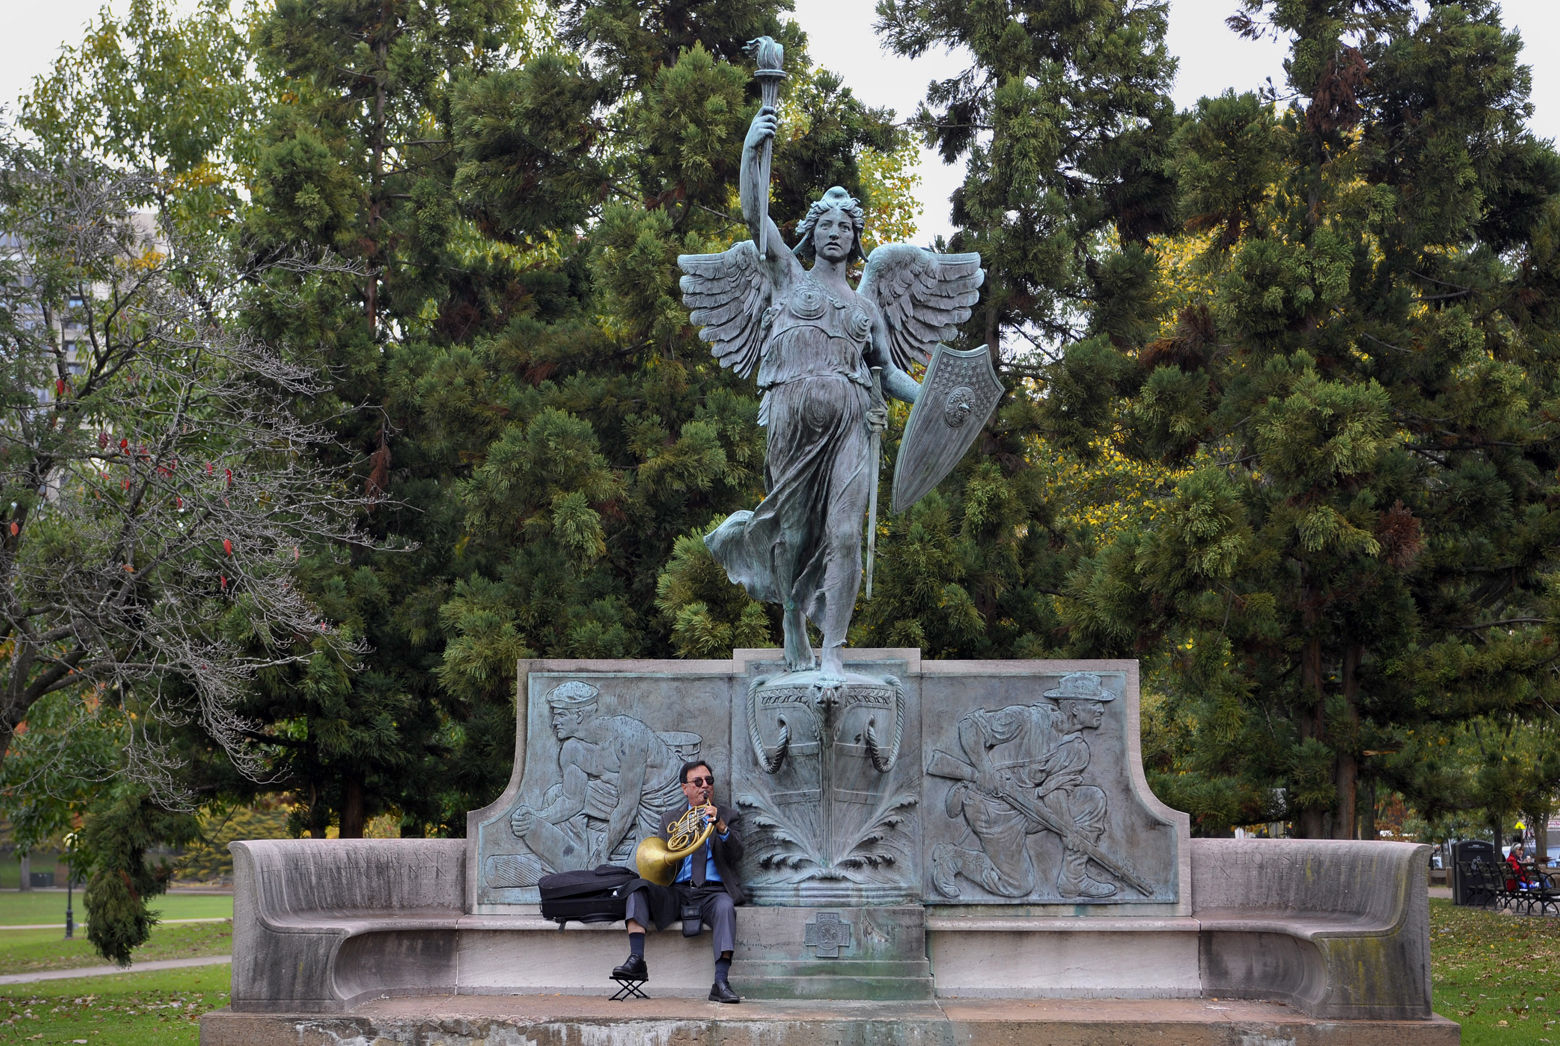 Victor Perpetua plays his French horn seated under a statue of the Spirit of Victory in Bushnell Park in Hartford, Conn., Tuesday, Oct. 23, 2012.  Perpetua is an attorney in the city and often comes out to the park to play his horn on his lunch break.  (AP Photo/Jessica Hill)